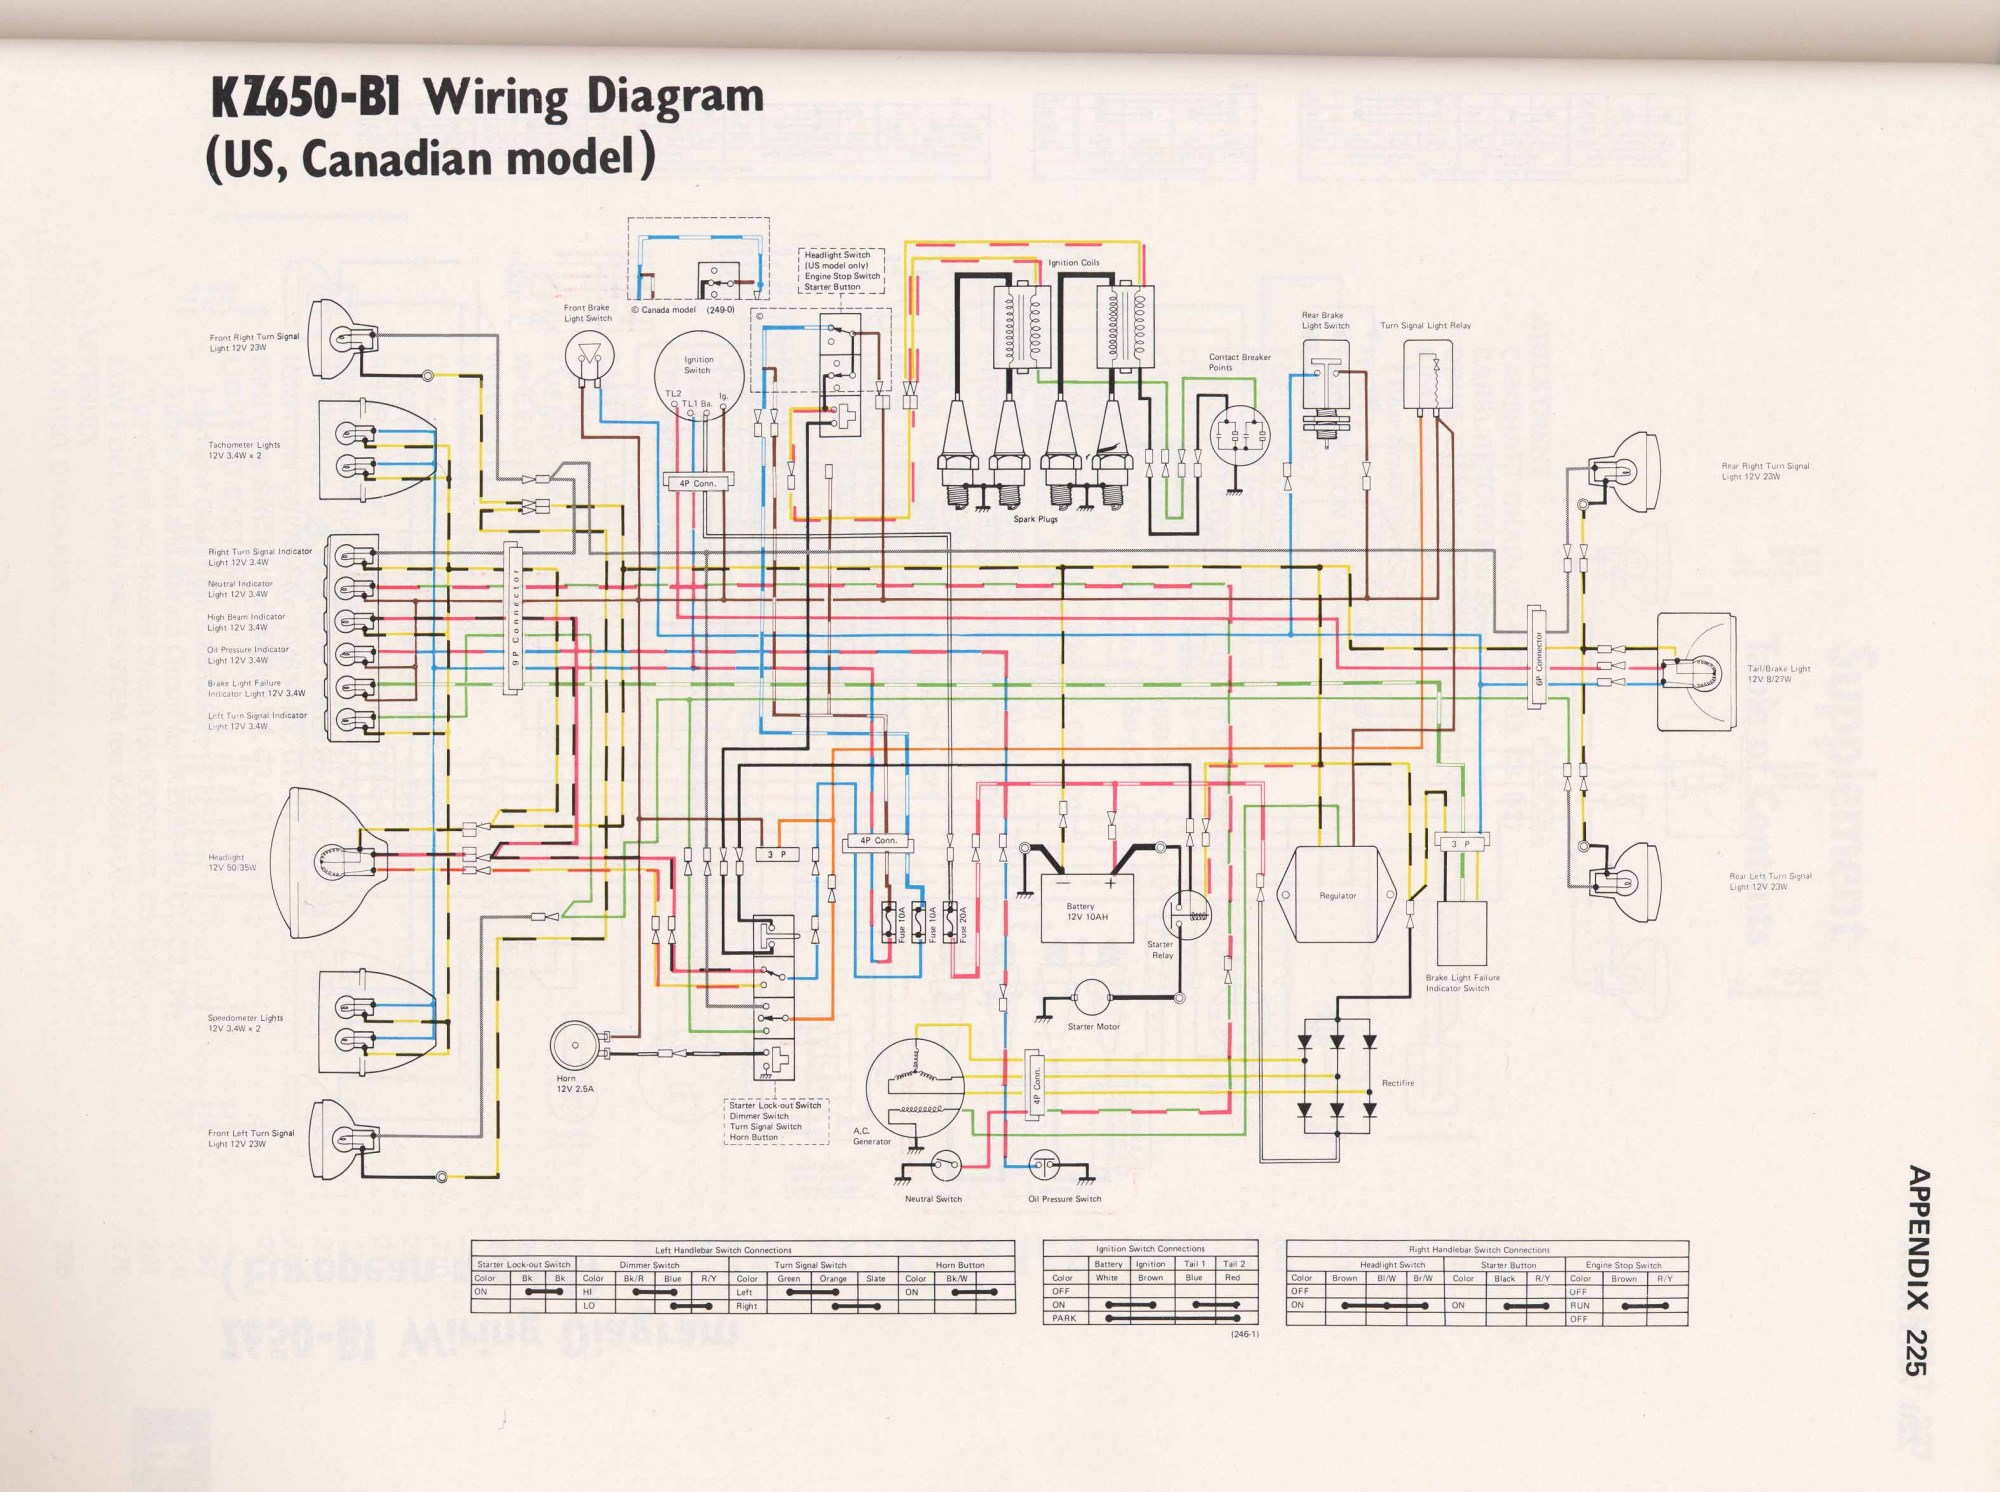 hight resolution of kz650 info wiring diagramskz650 wiring diagrams